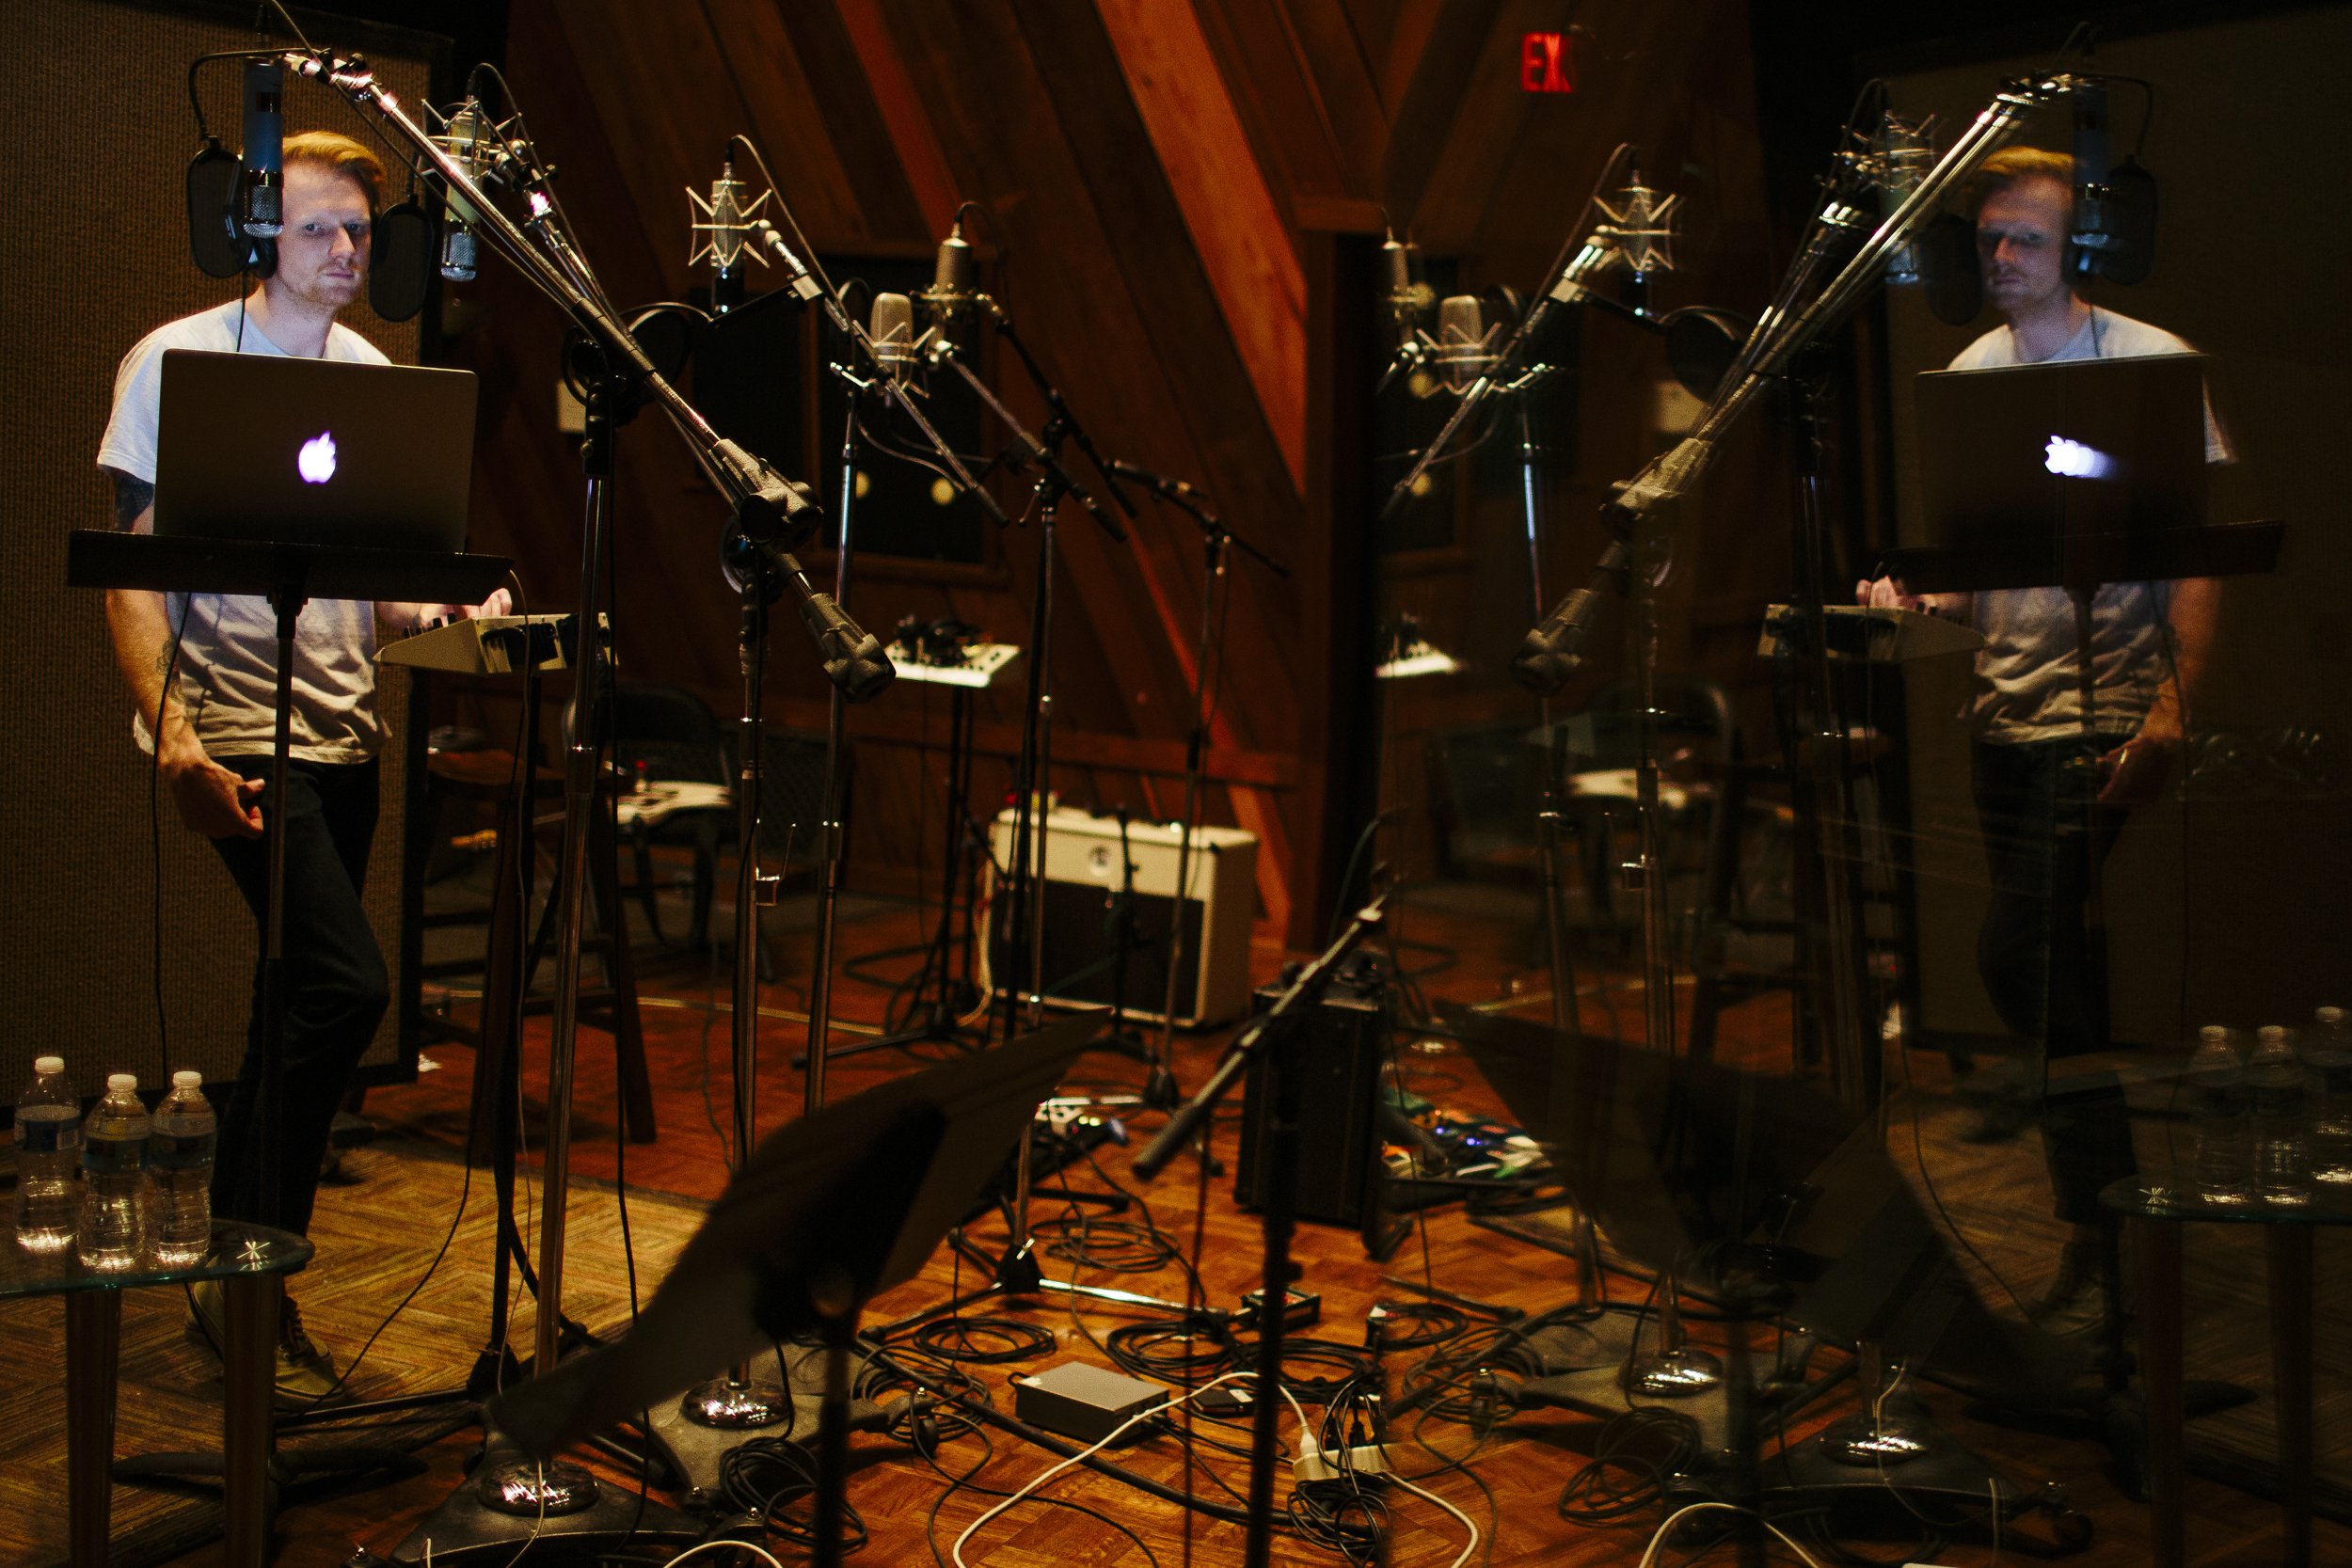 Five of the mic's we tried out for vocals.